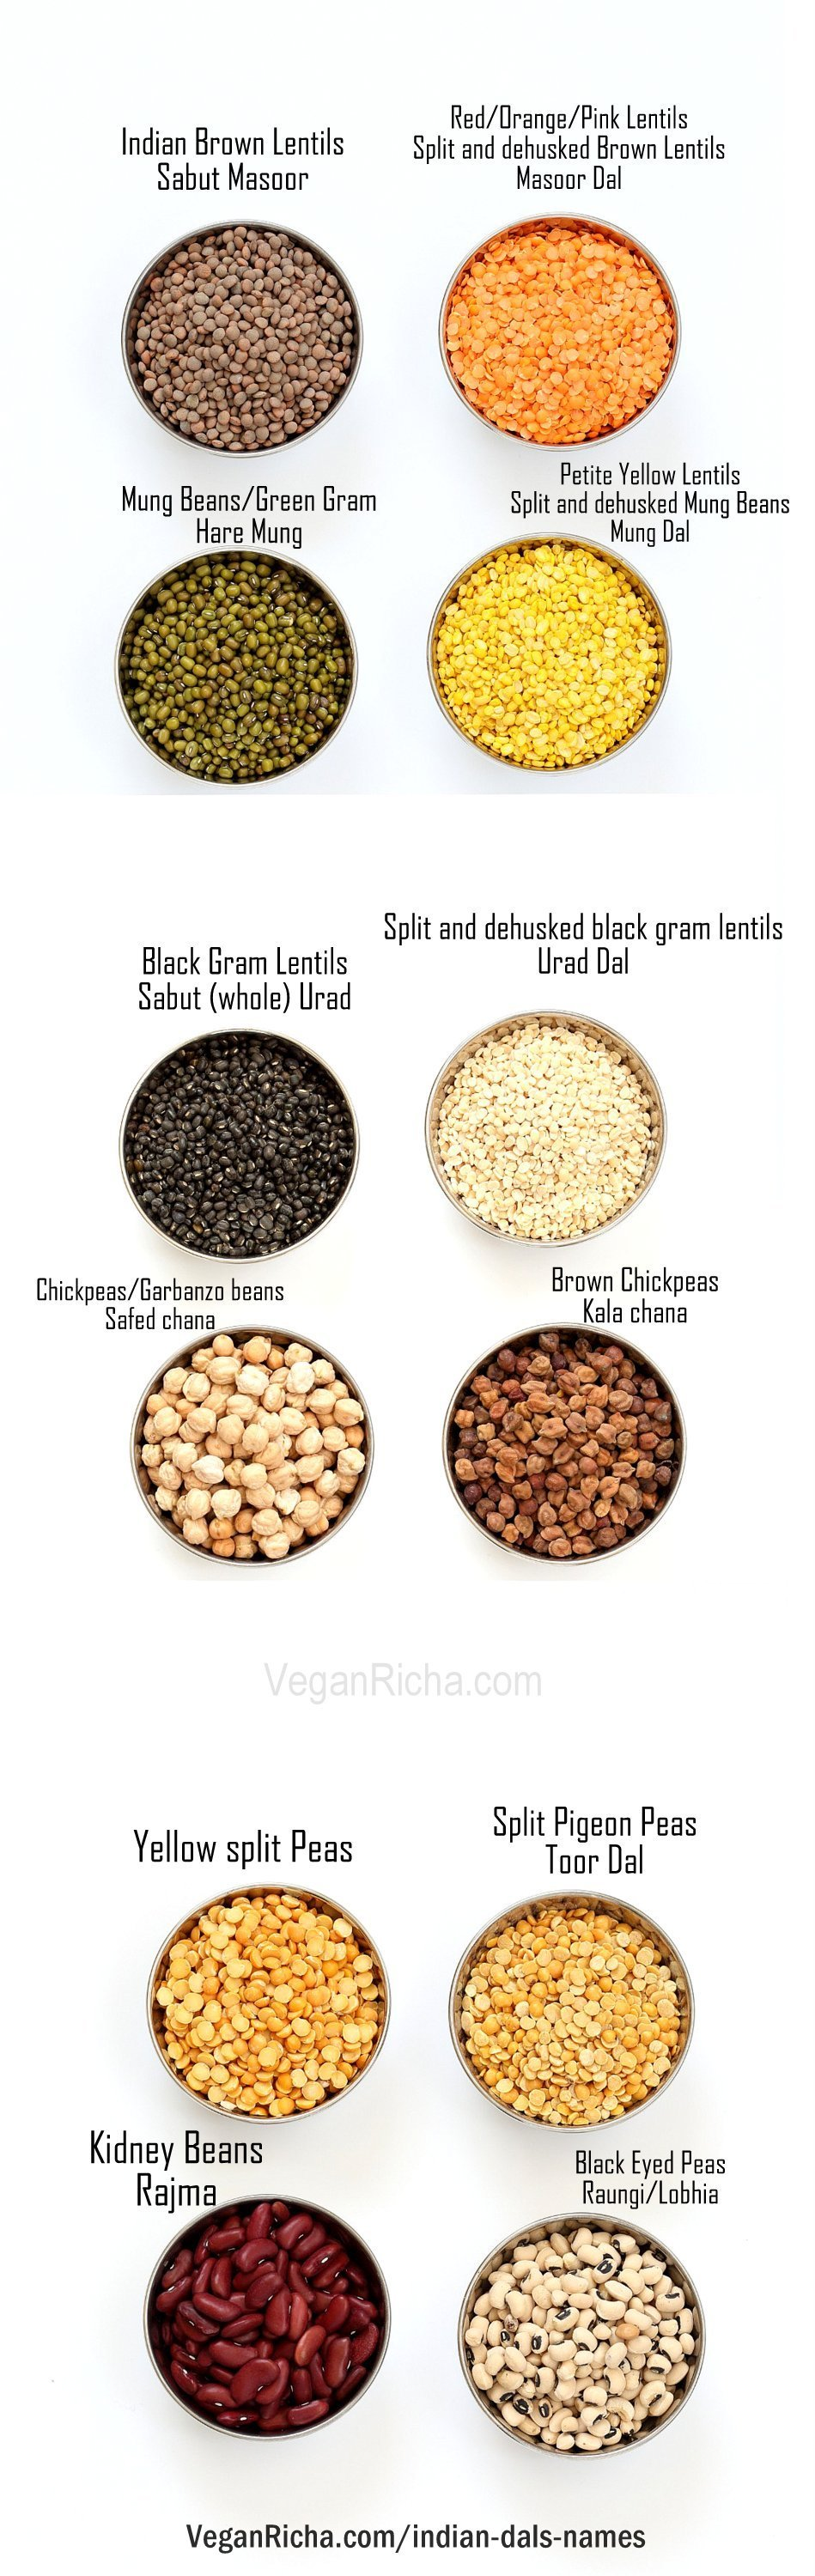 Indian Dals Names - List of legumes and pulses names in hindi and english  | Vegan Richa